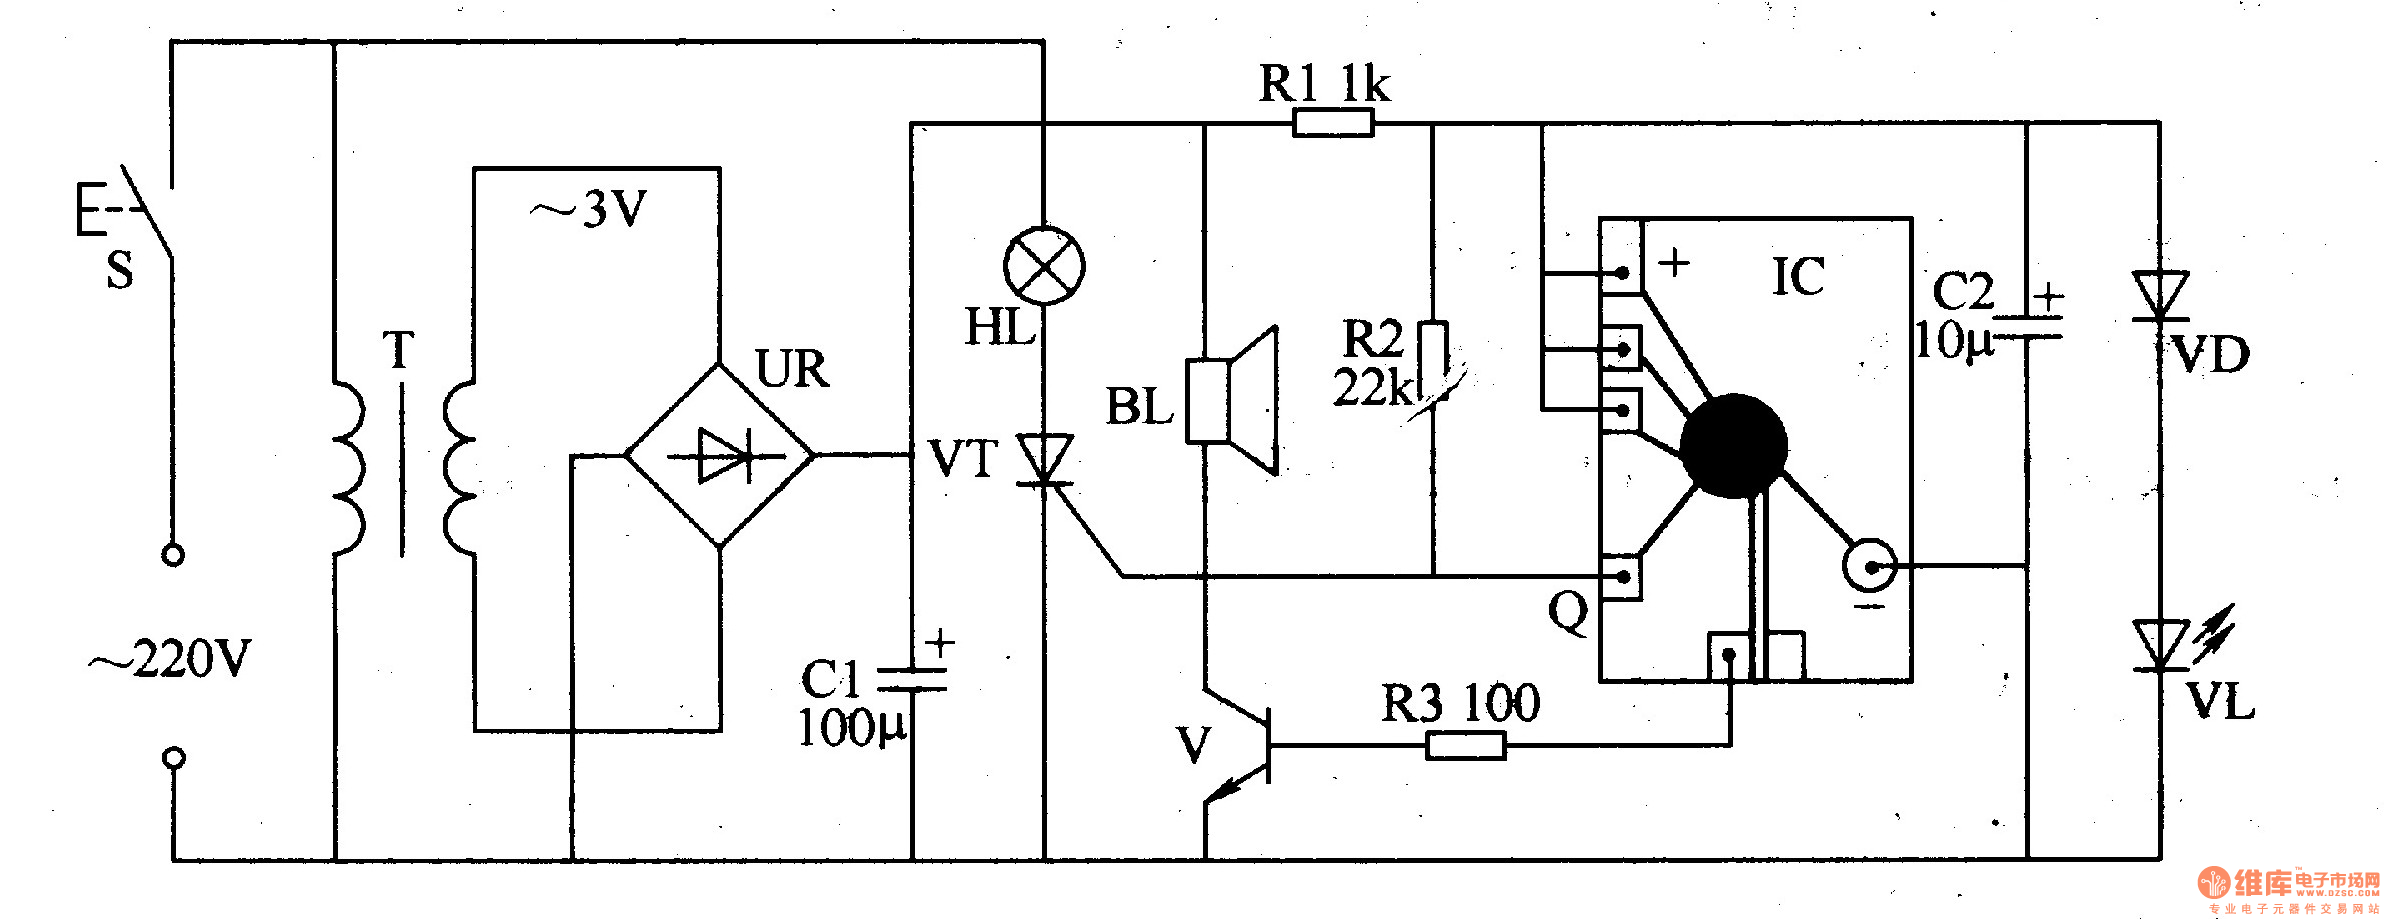 Optical Electronic Doorbell 1 Electrical Equipment Circuit Seekiccom Circuitdiagram Automotivecircuit Soundgeneratorcircuit